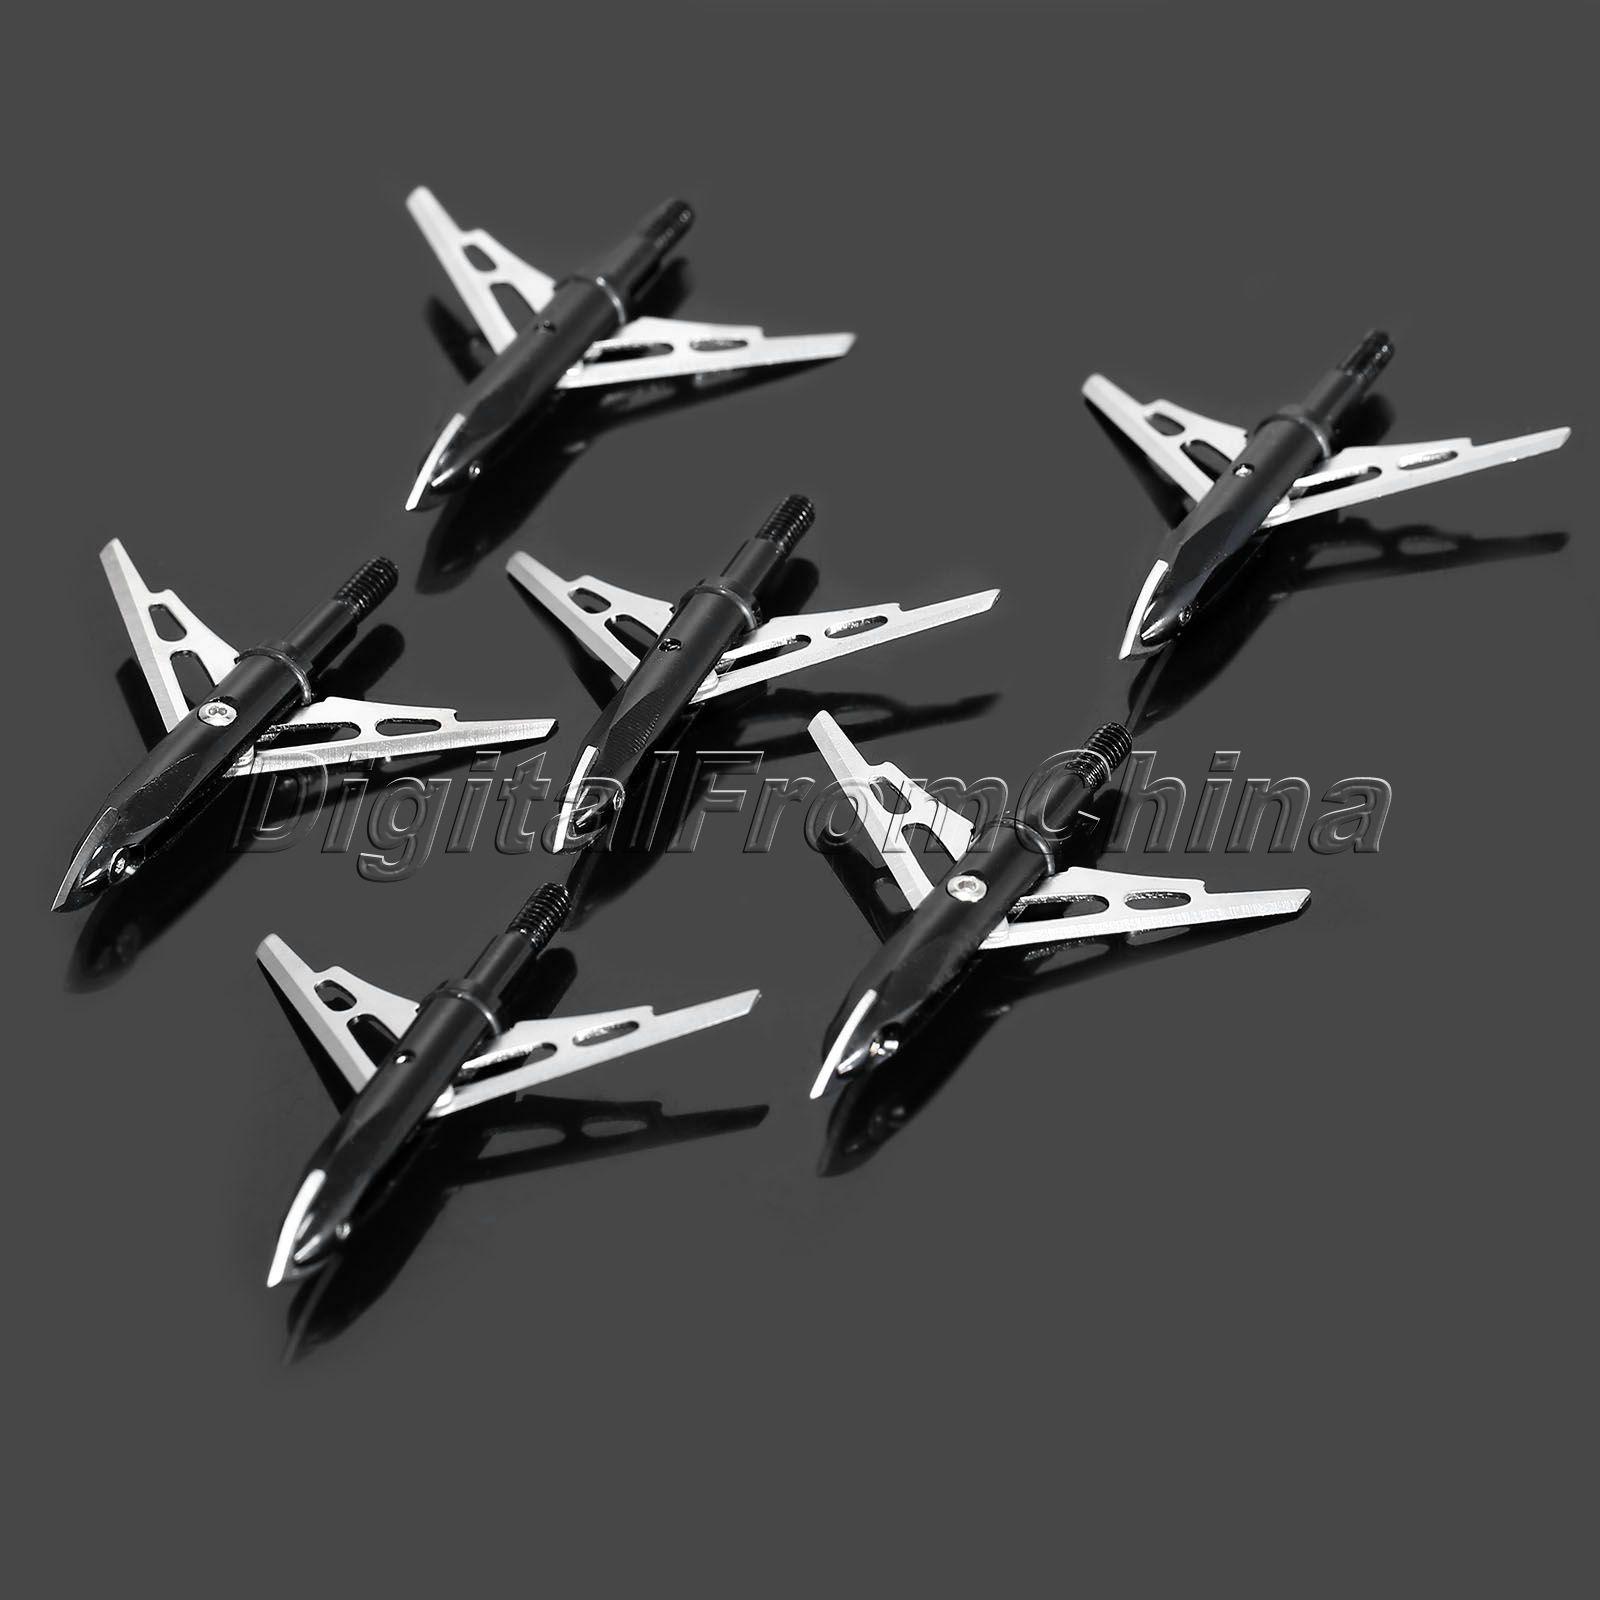 6 Pcs/lot Black Stainless Steel Hunting Arrowheads Arrow Heads Points Broadhead 100 Grain Compound Archery Shooting Long Bow(China (Mainland))